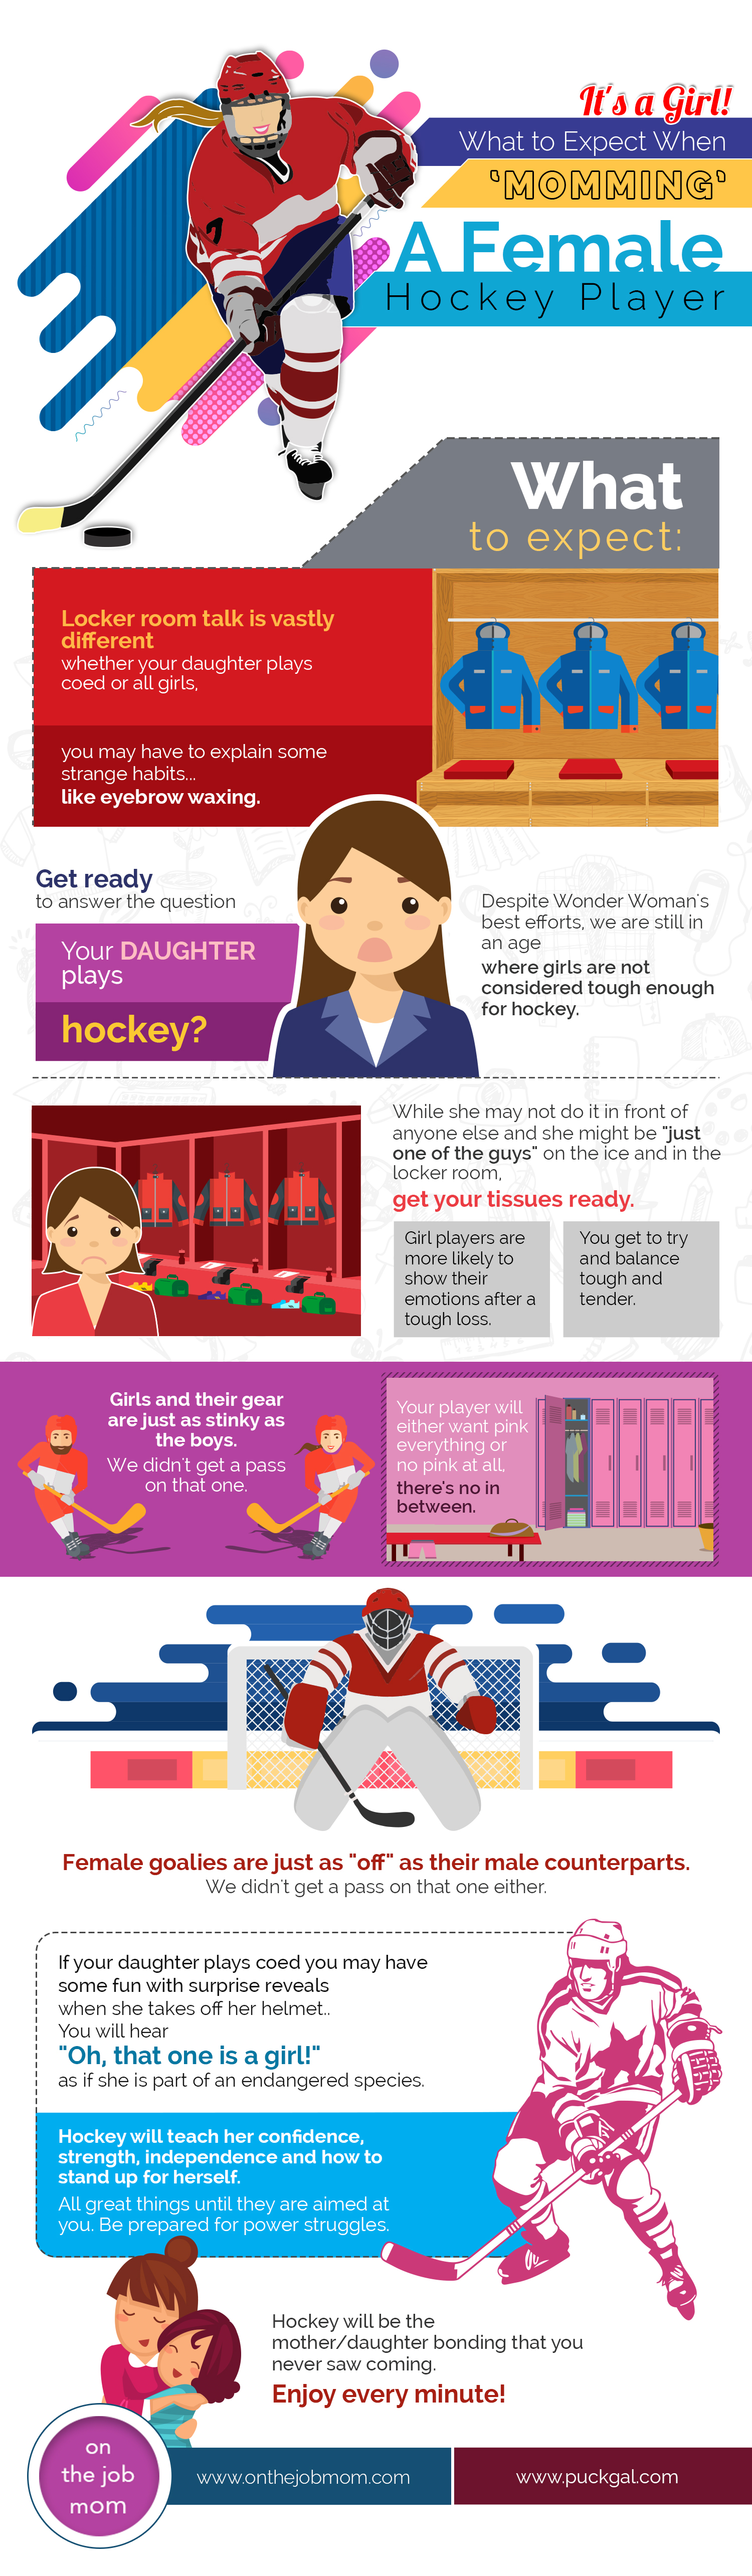 girl-hockey-player